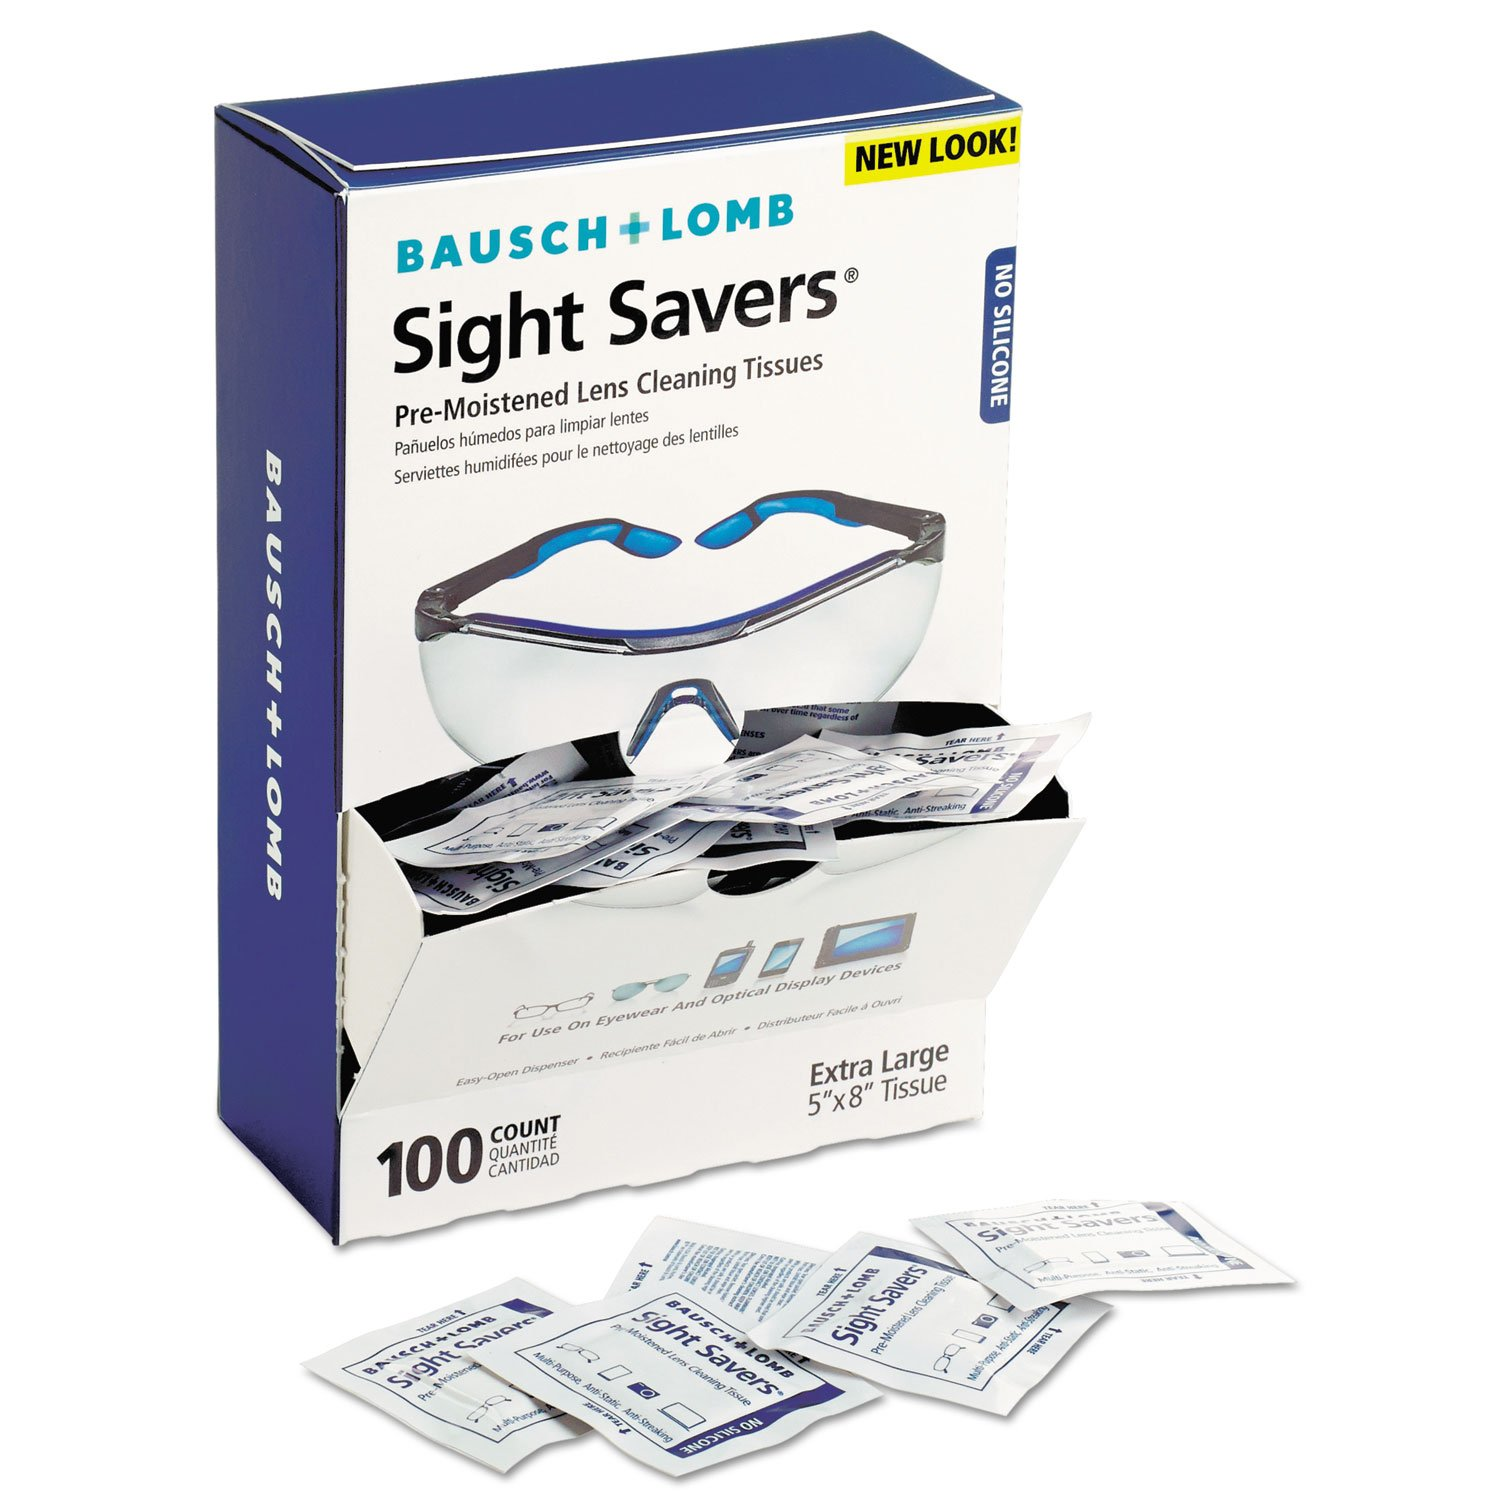 Sight Savers Premoistened Lens Cleaning Tissues, 100/Box, 10 Boxes/Carton, Sold as 1 Carton, 1000 Each per Carton